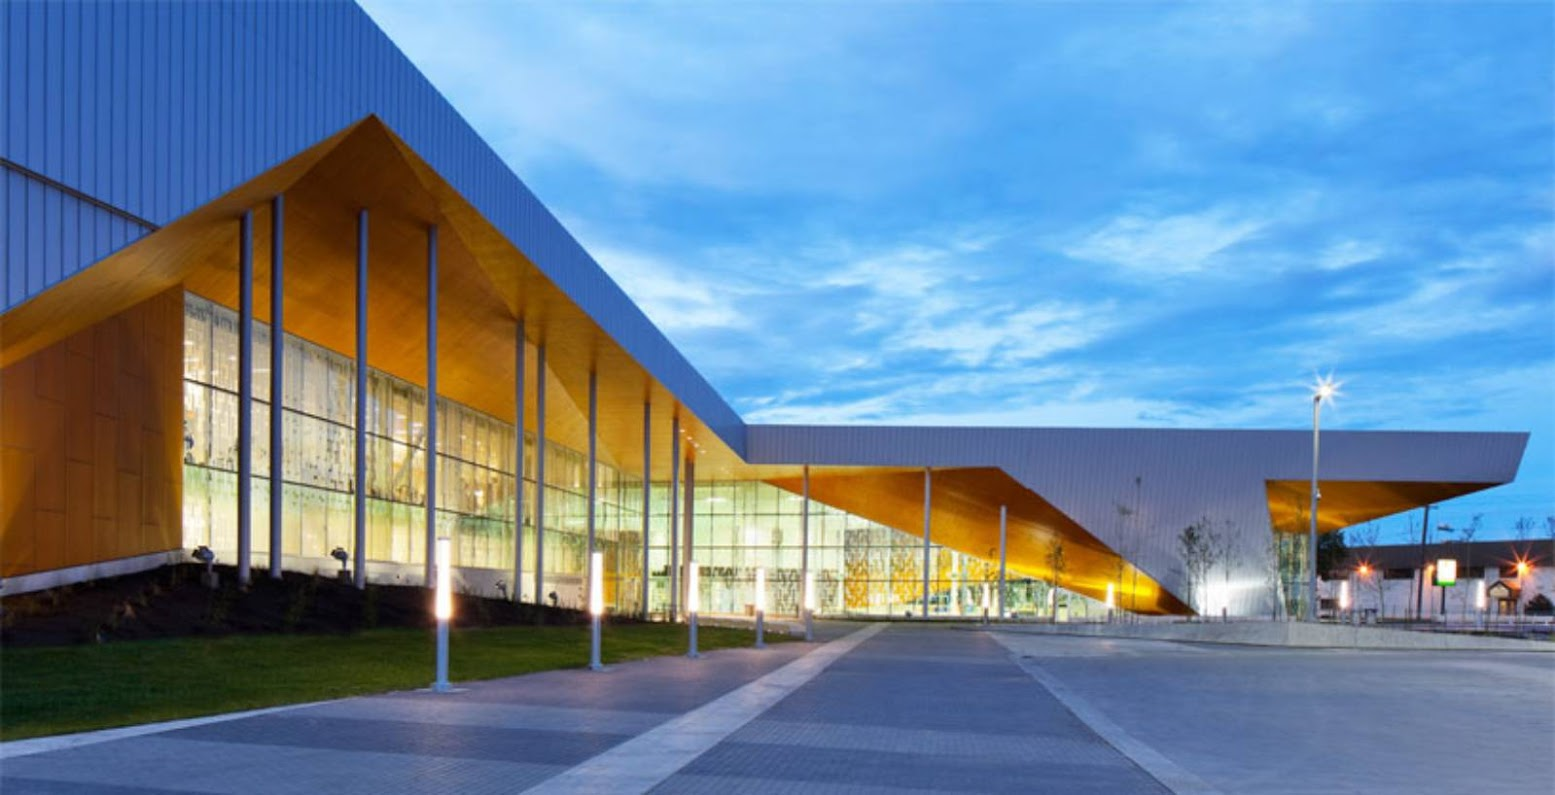 Edmonton, Alberta, Canada: [COMMONWEALTH COMMUNITY RECREATION CENTER BY MJMA]